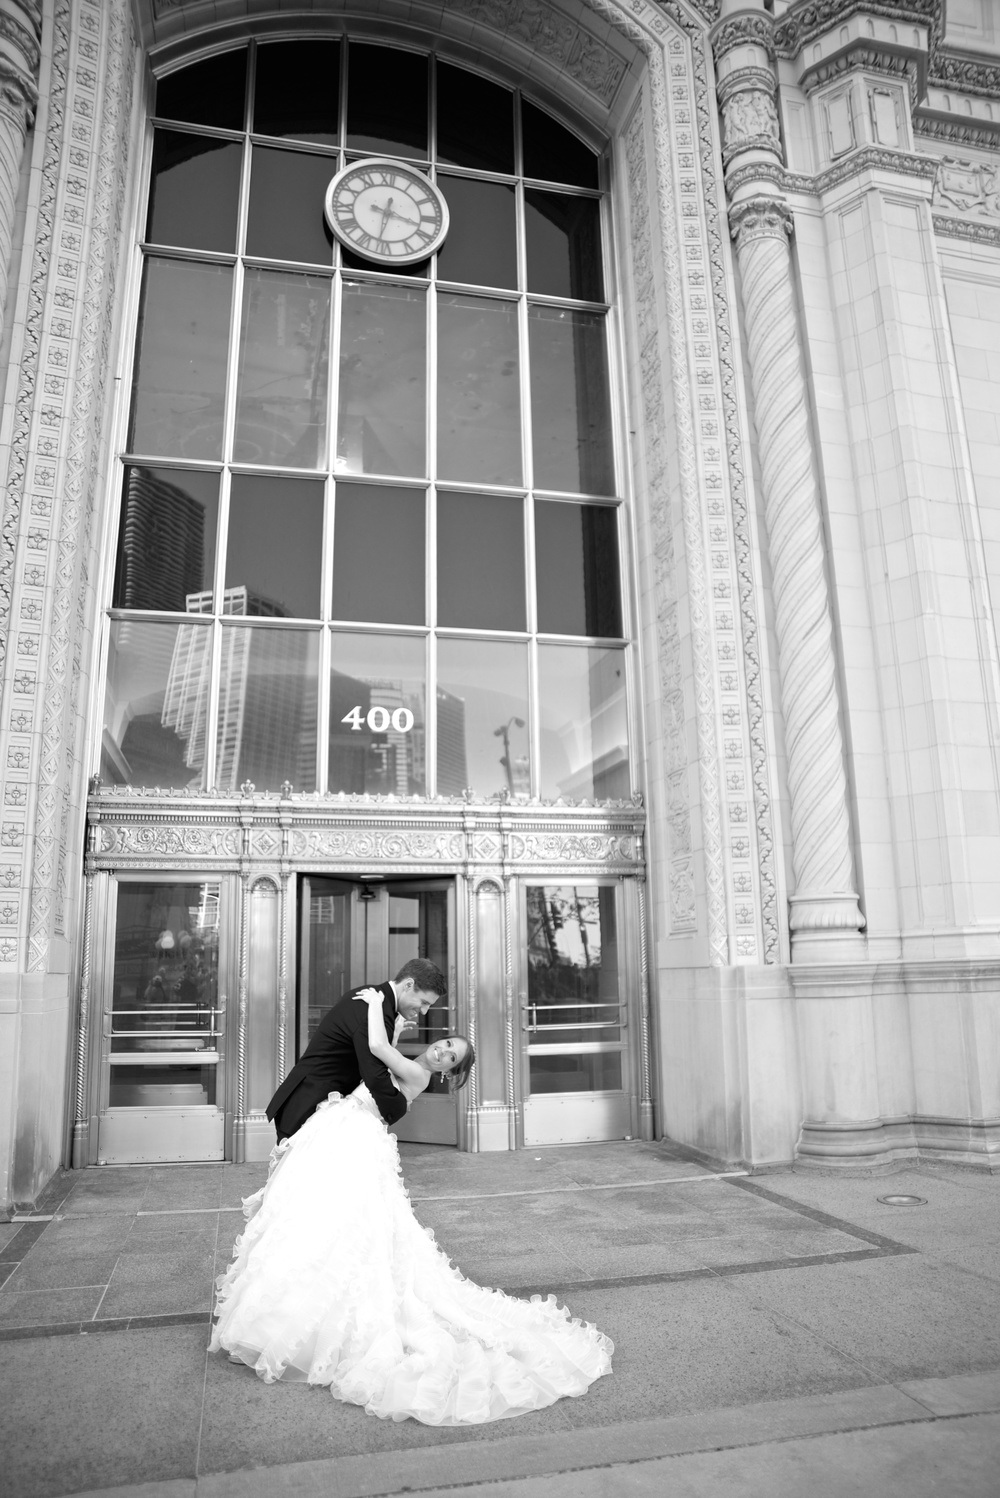 2014.05.25_Yoder-Yelsey_Wedding  2014.05.25_Yoder-Yelsey_Wedding